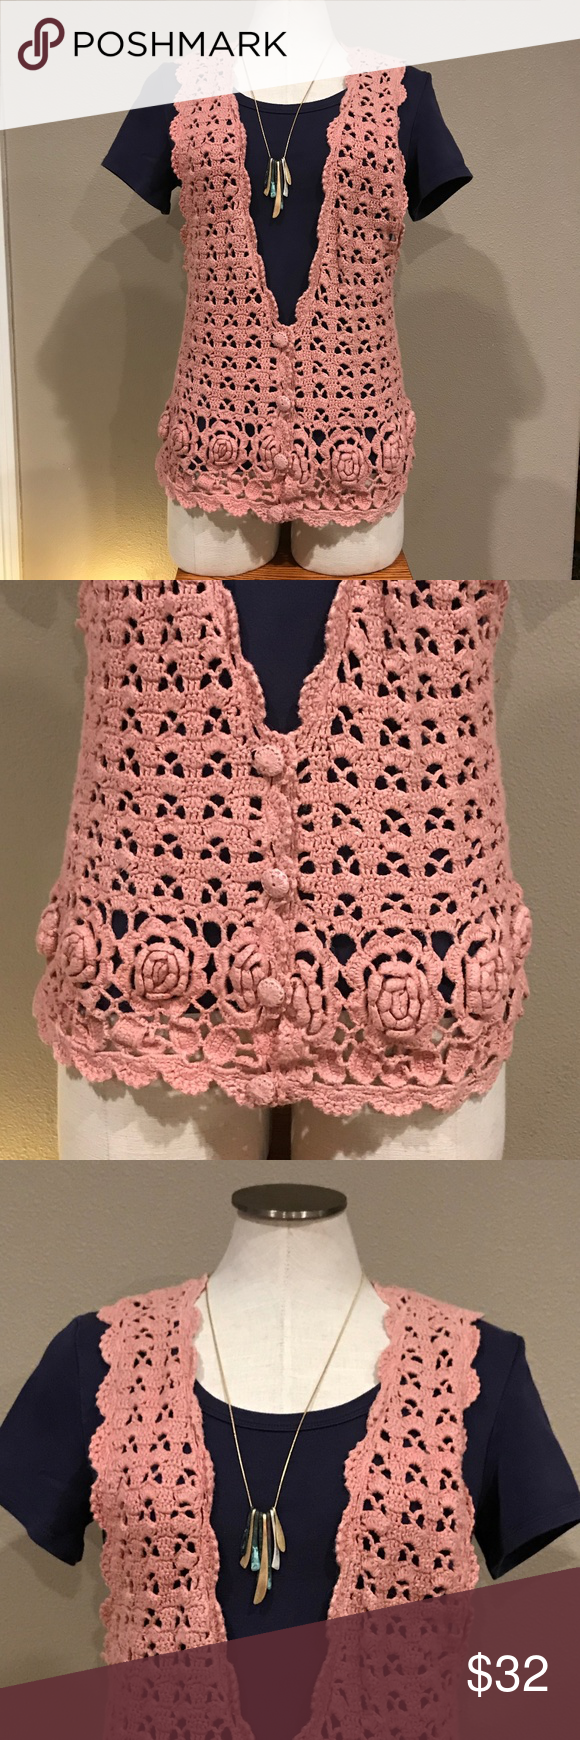 One step up rose pink crocheted sweater vest my posh closet